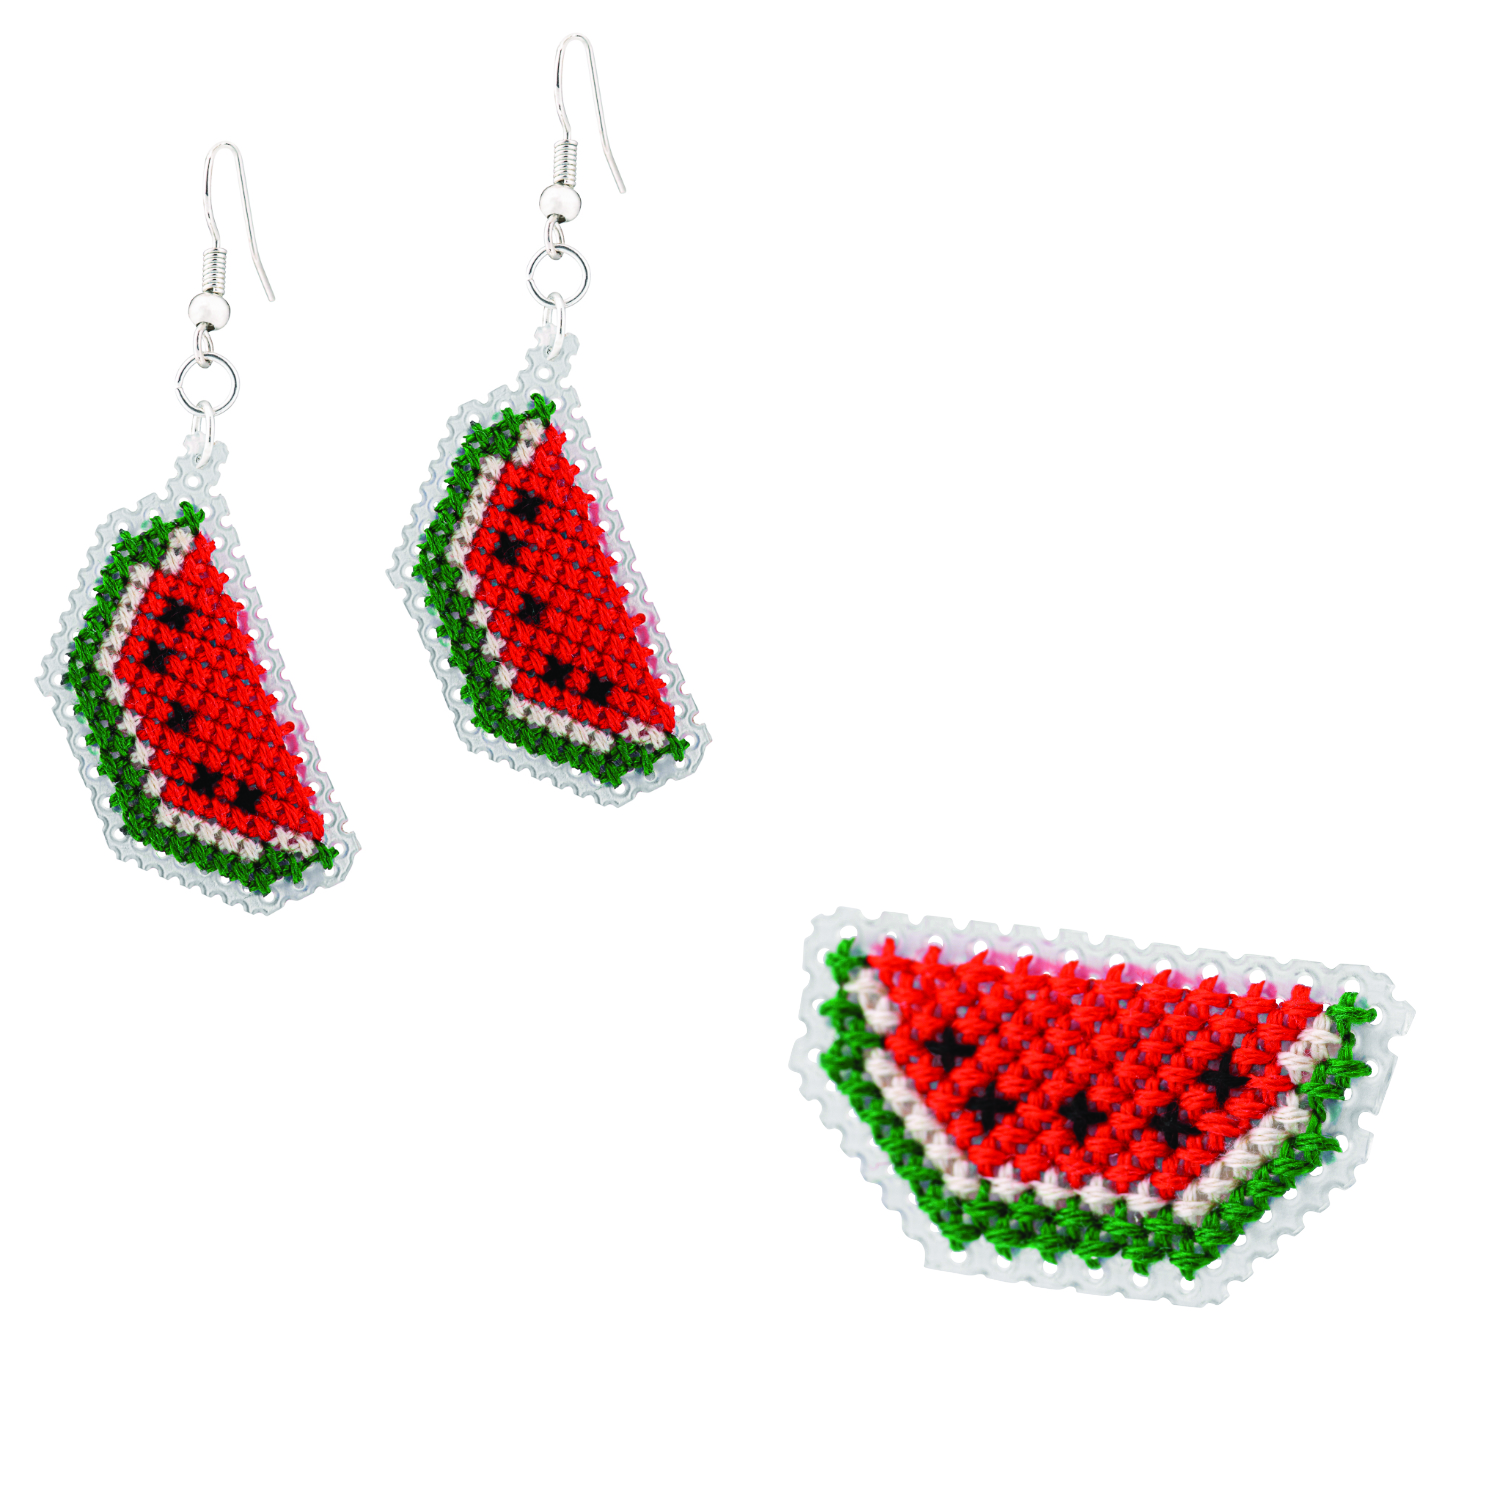 Watermelon Brooch and Earrings Cross Stitch Kit | STITCHFINITY